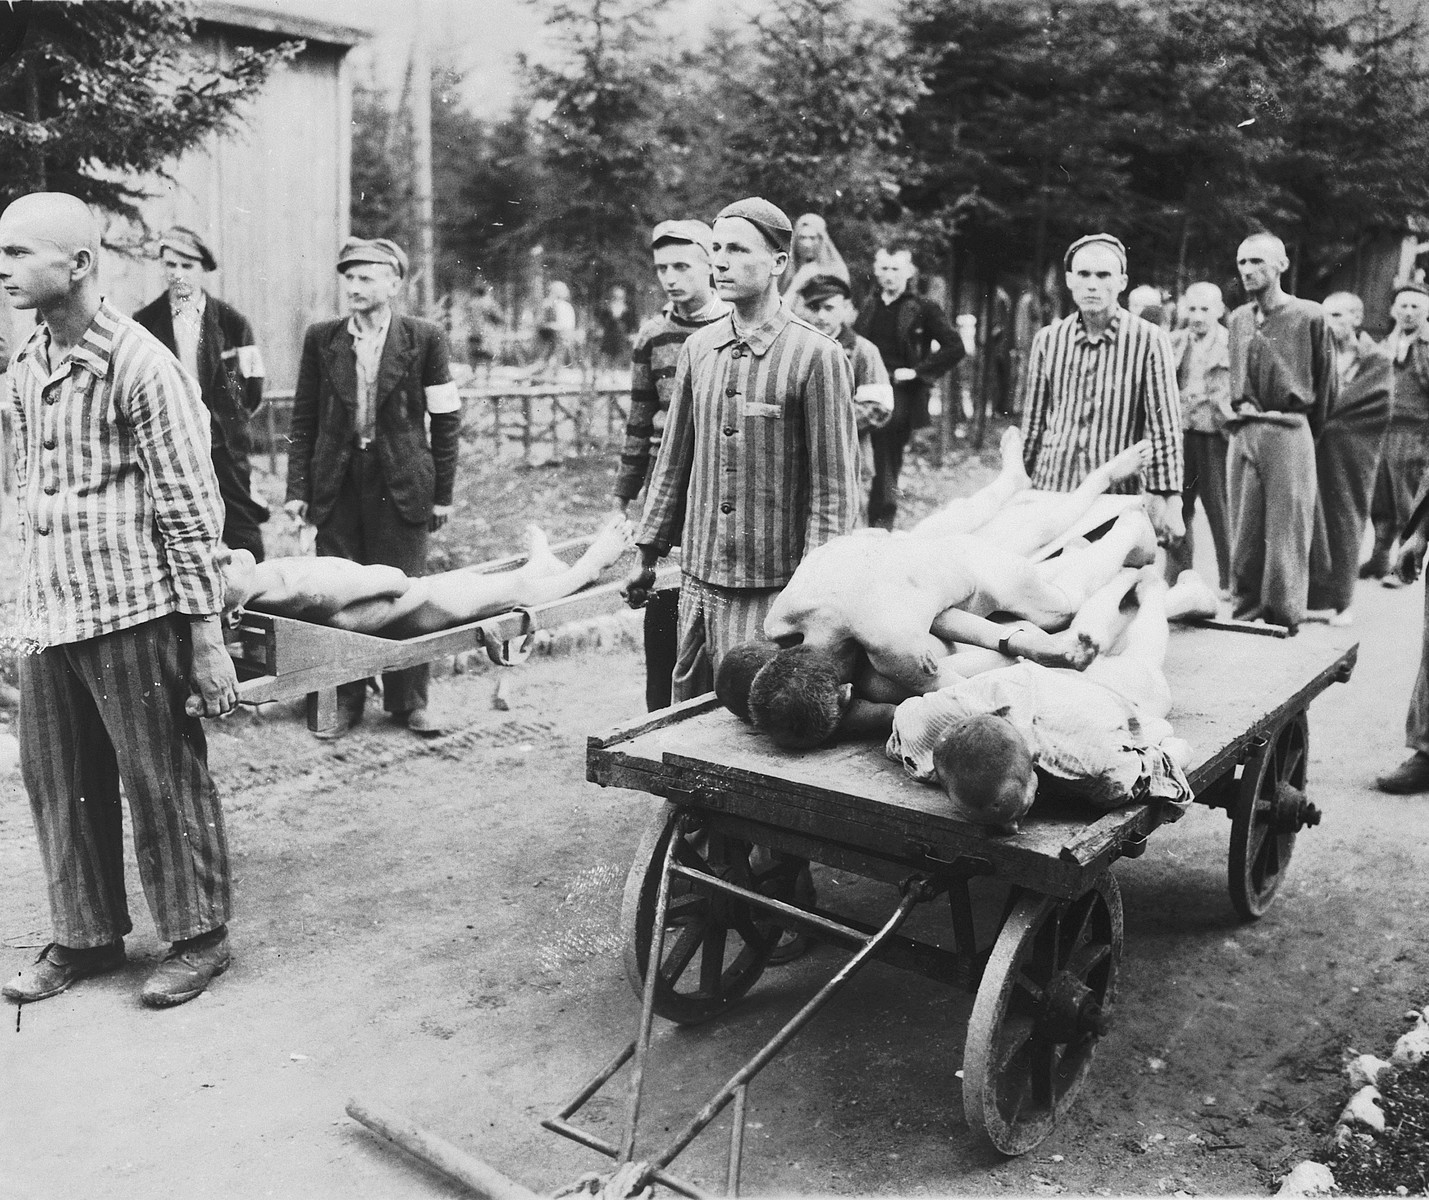 Survivors wearing their camp uniforms remove the dead on carts and stretchers at the newly liberated Ebensee concentration camp.  Among those pictured is Henek Brodt. He is standing sixth from the left, partially obscured, wearing a prisoners uniform, cap and armband.